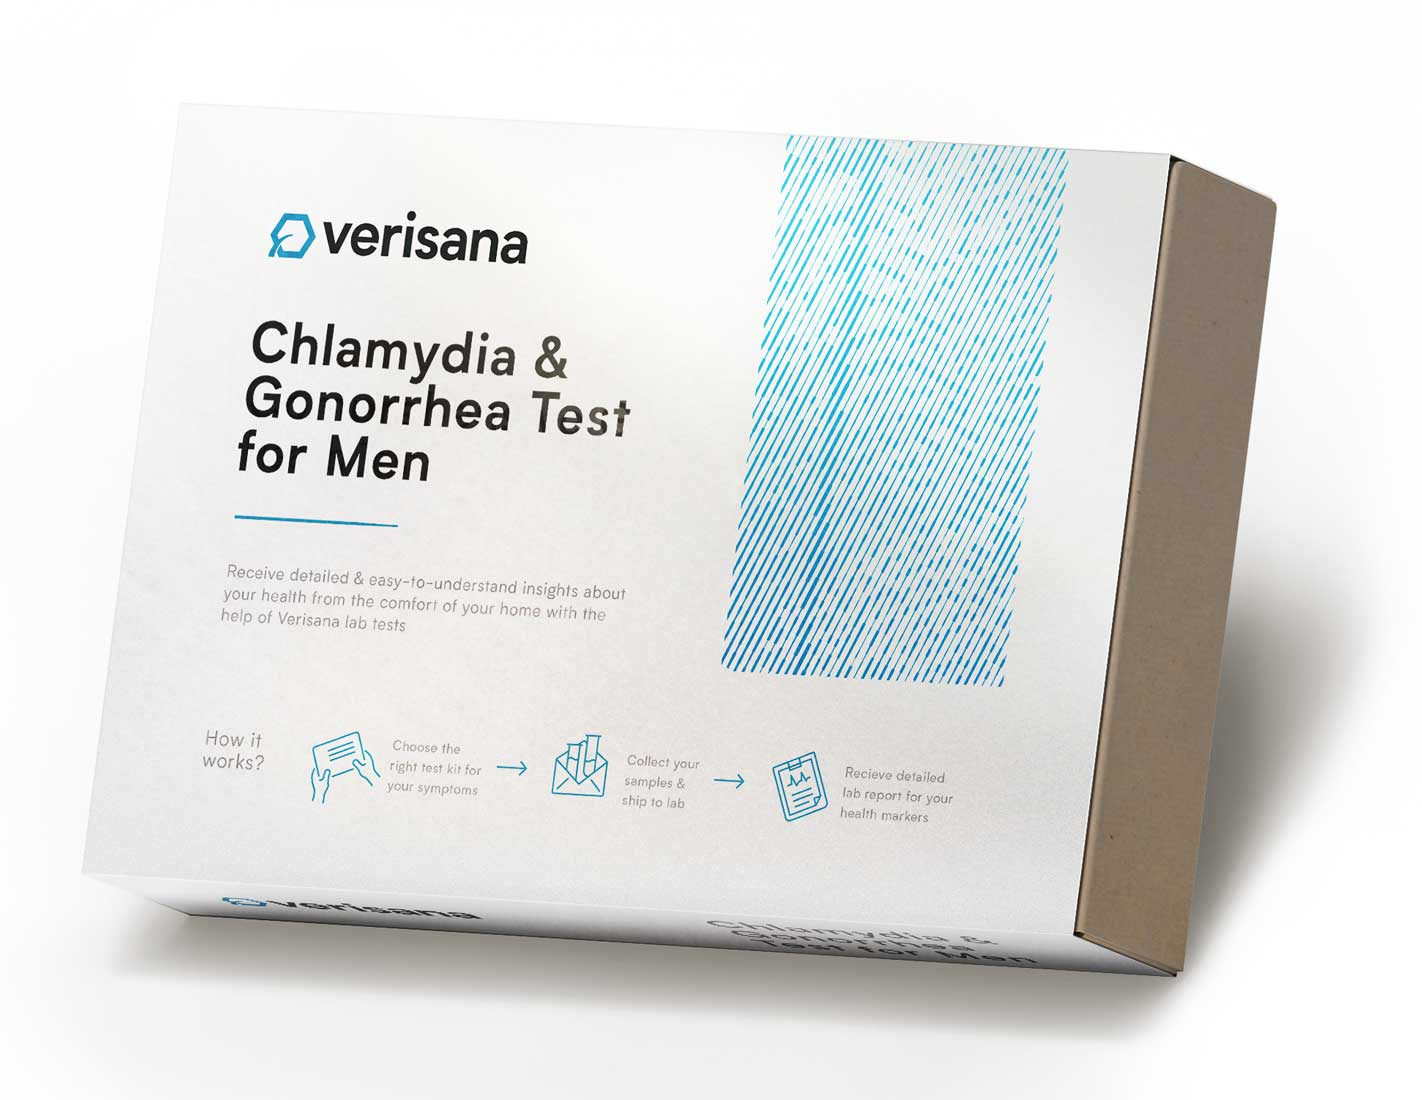 Chlamydia and Gonorrhea Test for Men